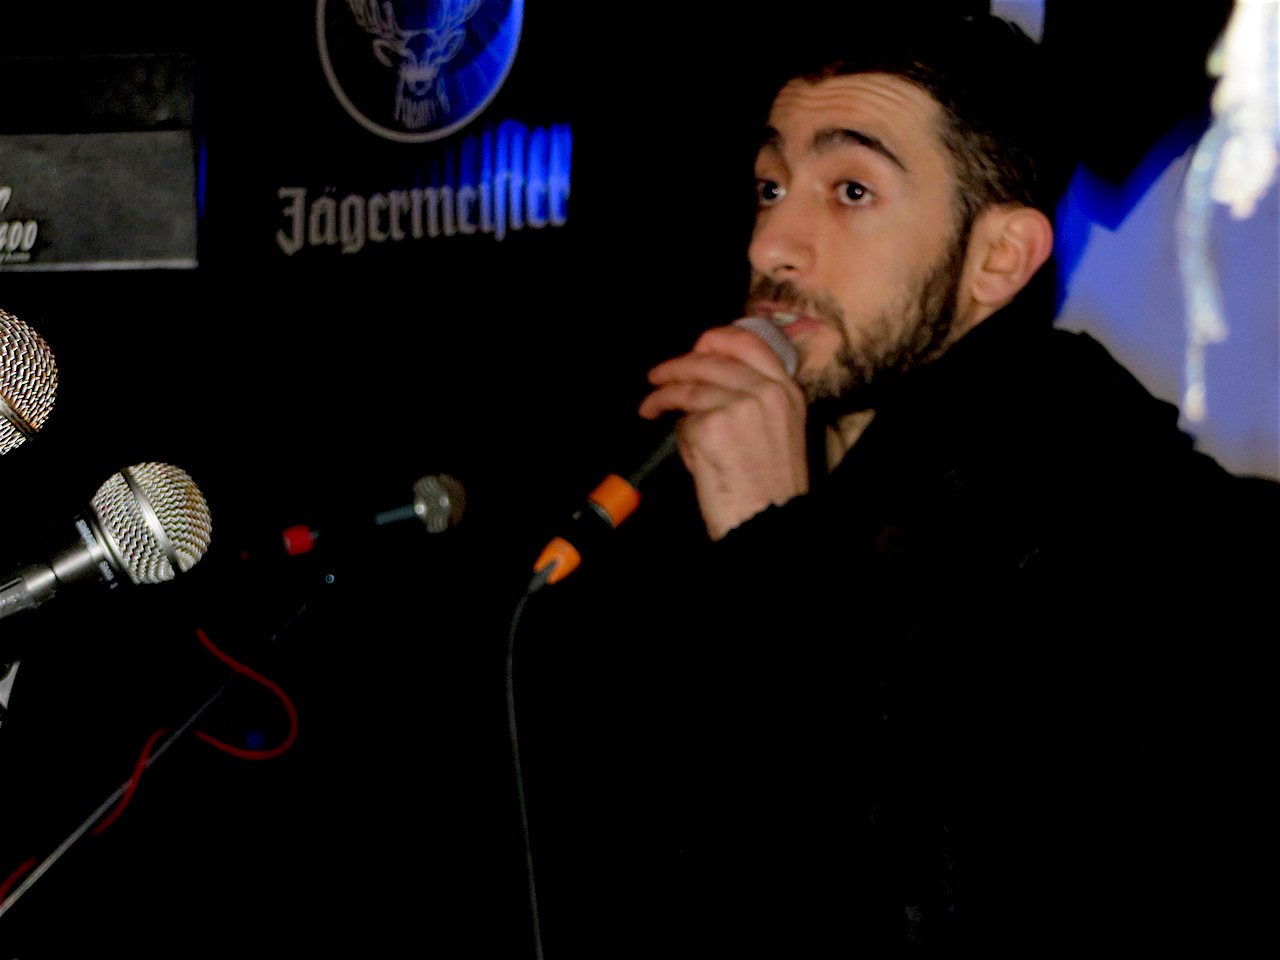 Spoken word artist Potent Whisper performing at 'No Social Cleansing in Lewisham' at the Birds Nest pub in Deptford on November 12, 2017 (Photo: Andy Worthington).